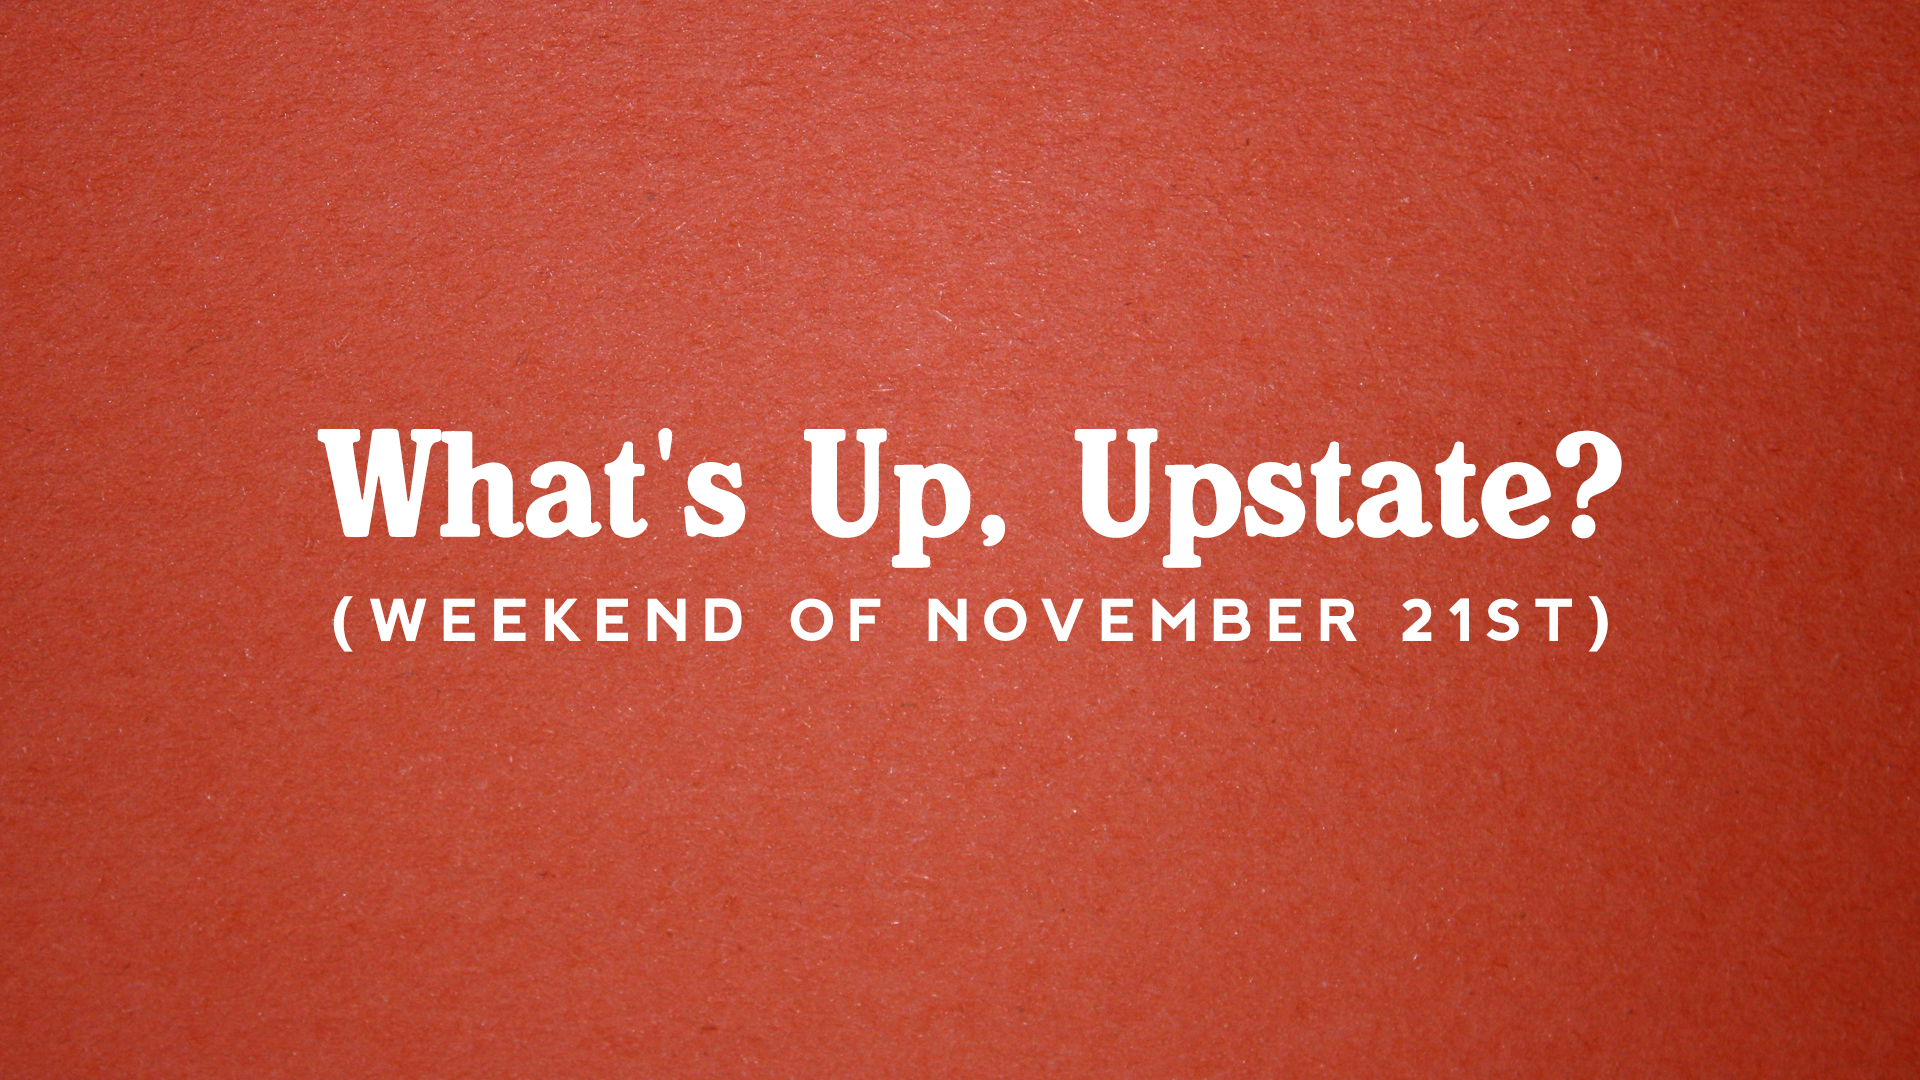 What's Up, Upstate? – Weekend of November 21st – November 24th